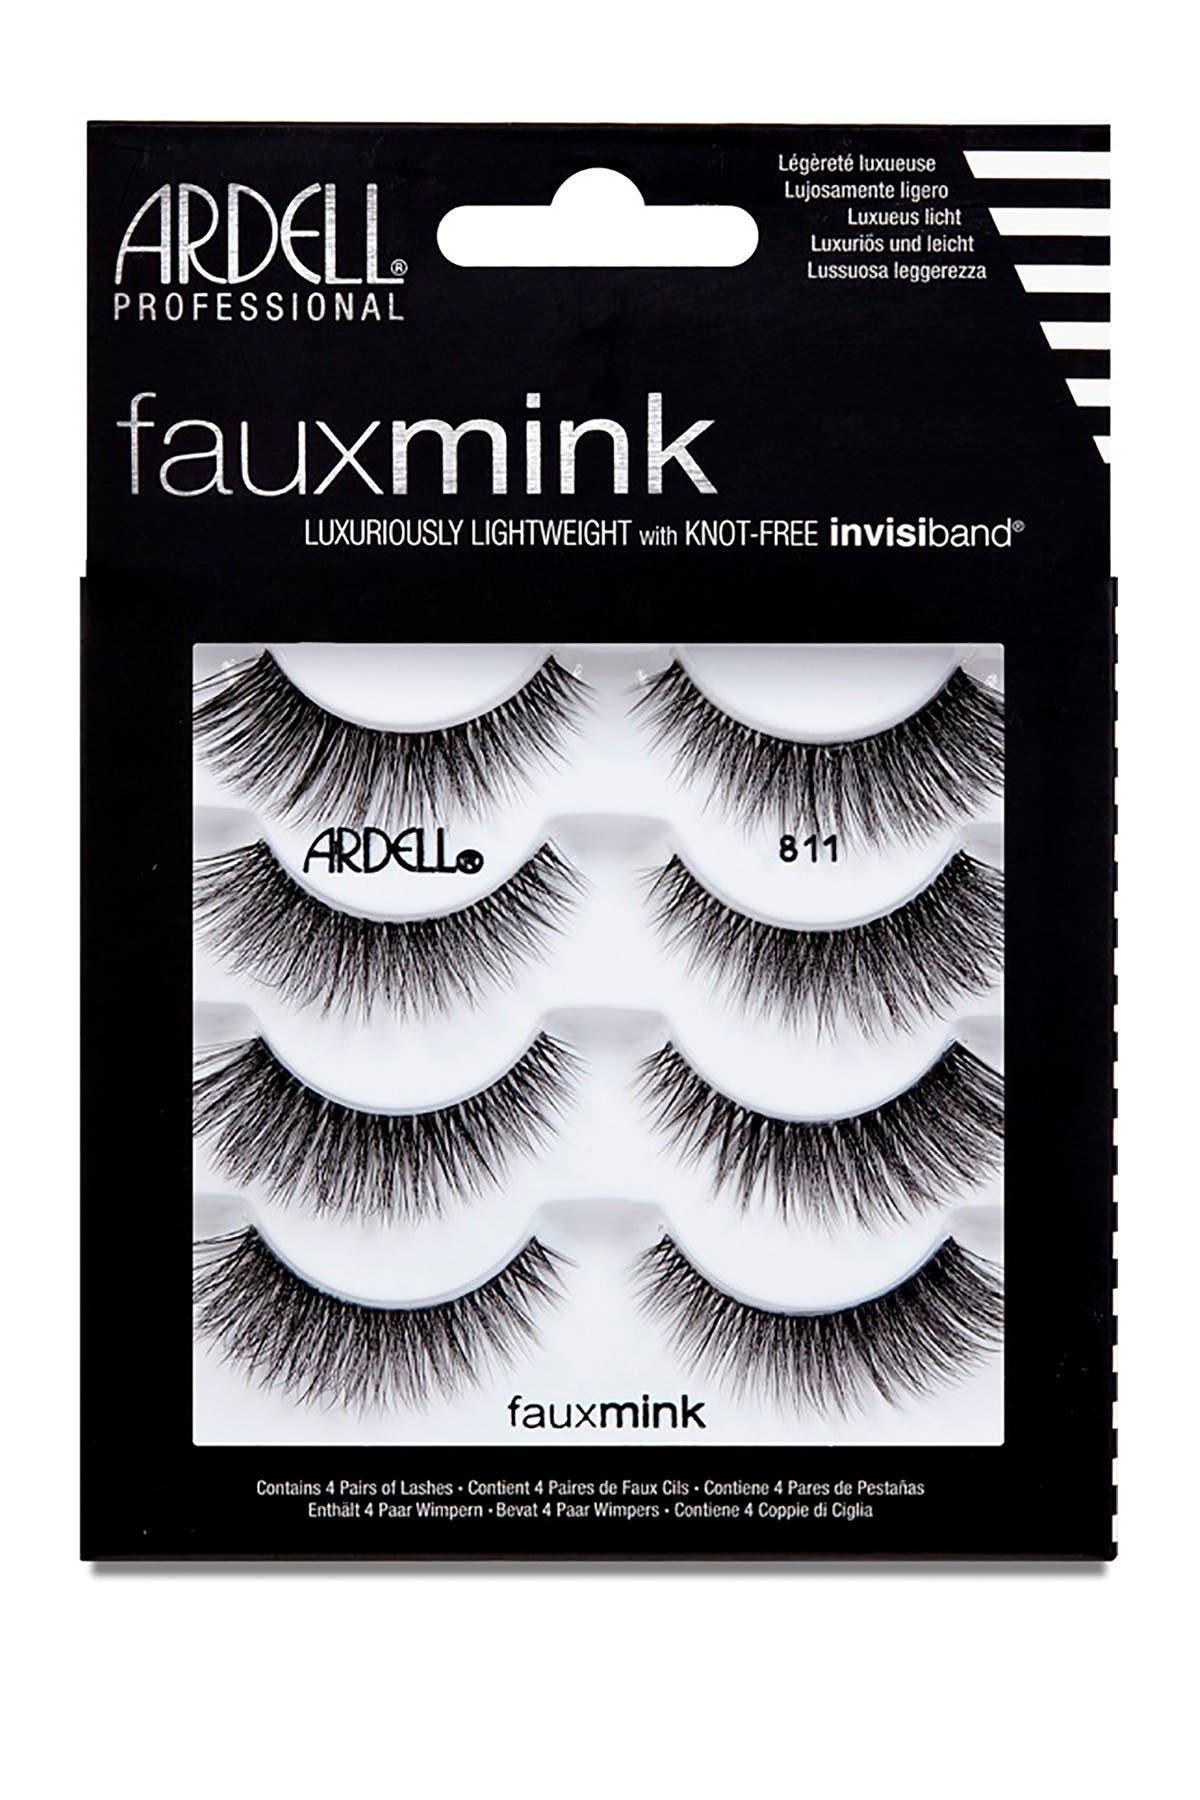 Image of ARDELL Faux Mink 811 Lashes - Pack of 4